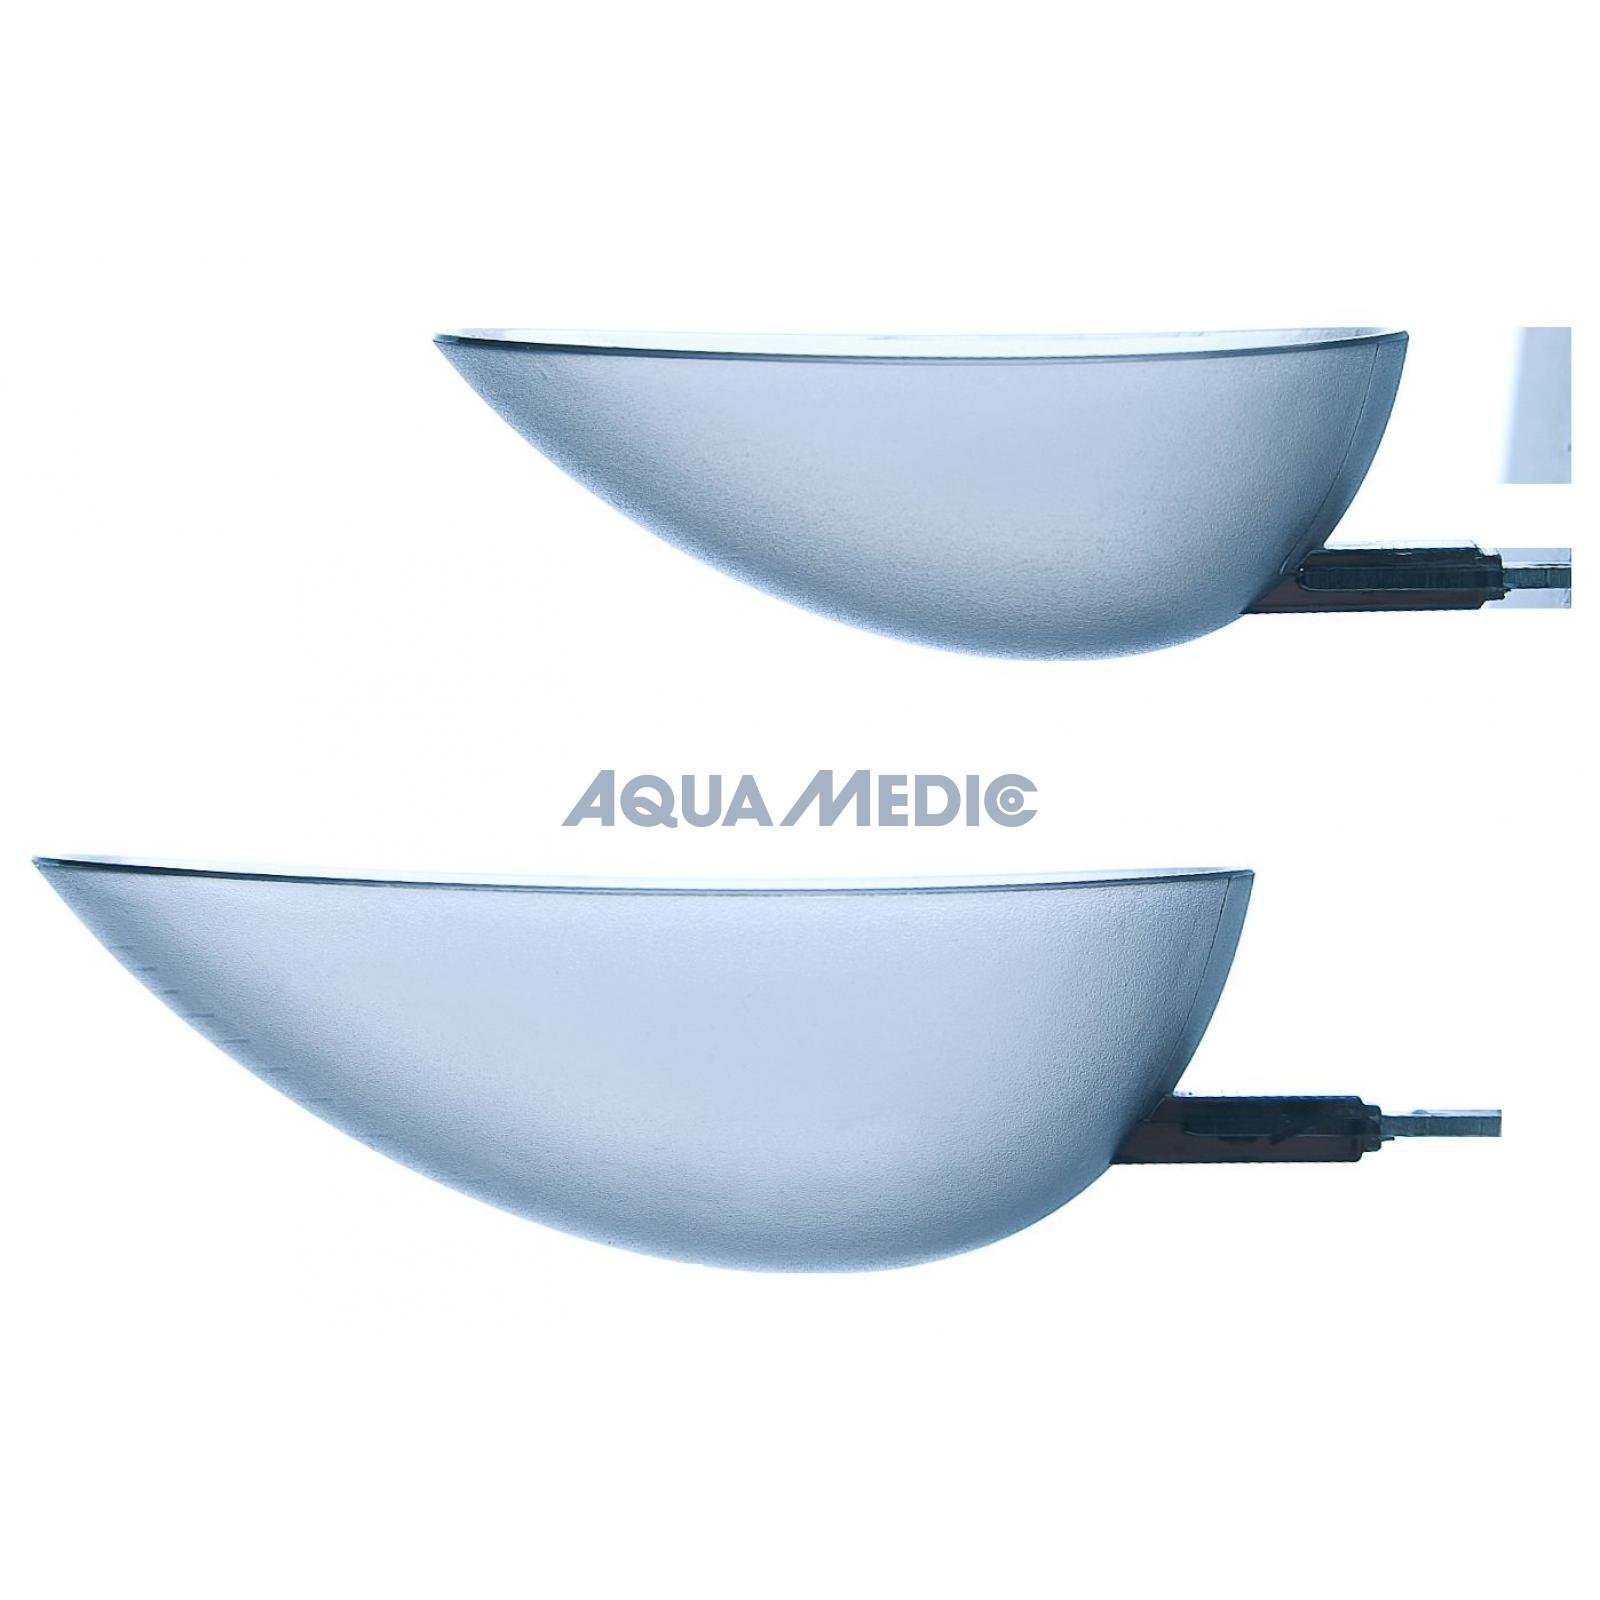 Shop Aqua Medic aquaspoon Spoon Scale